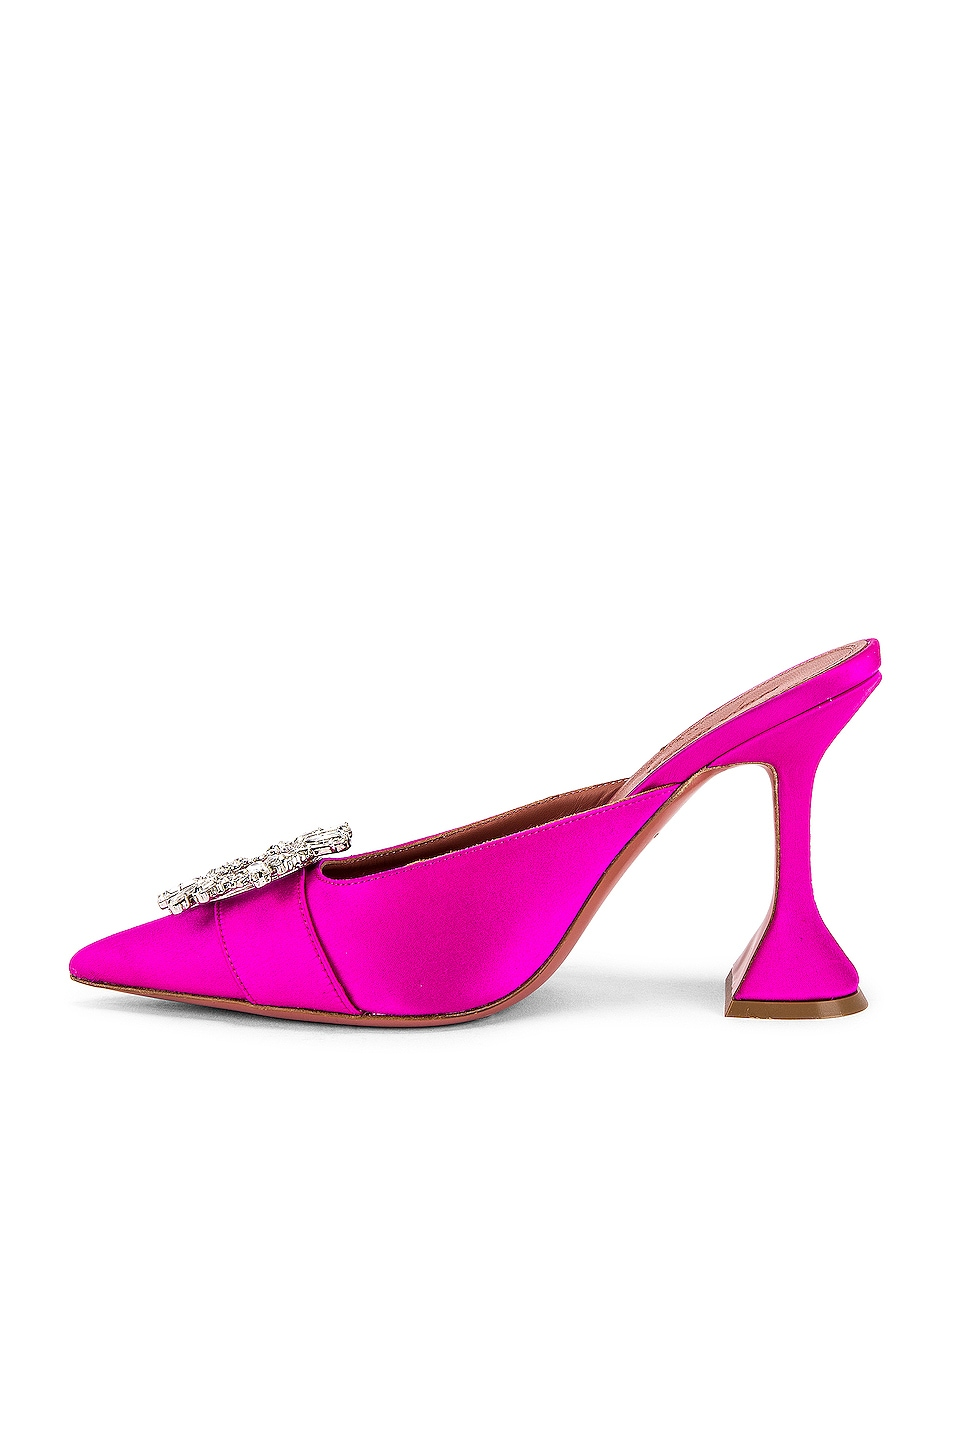 Image 5 of AMINA MUADDI Begum Satin Mule in Fuchsia